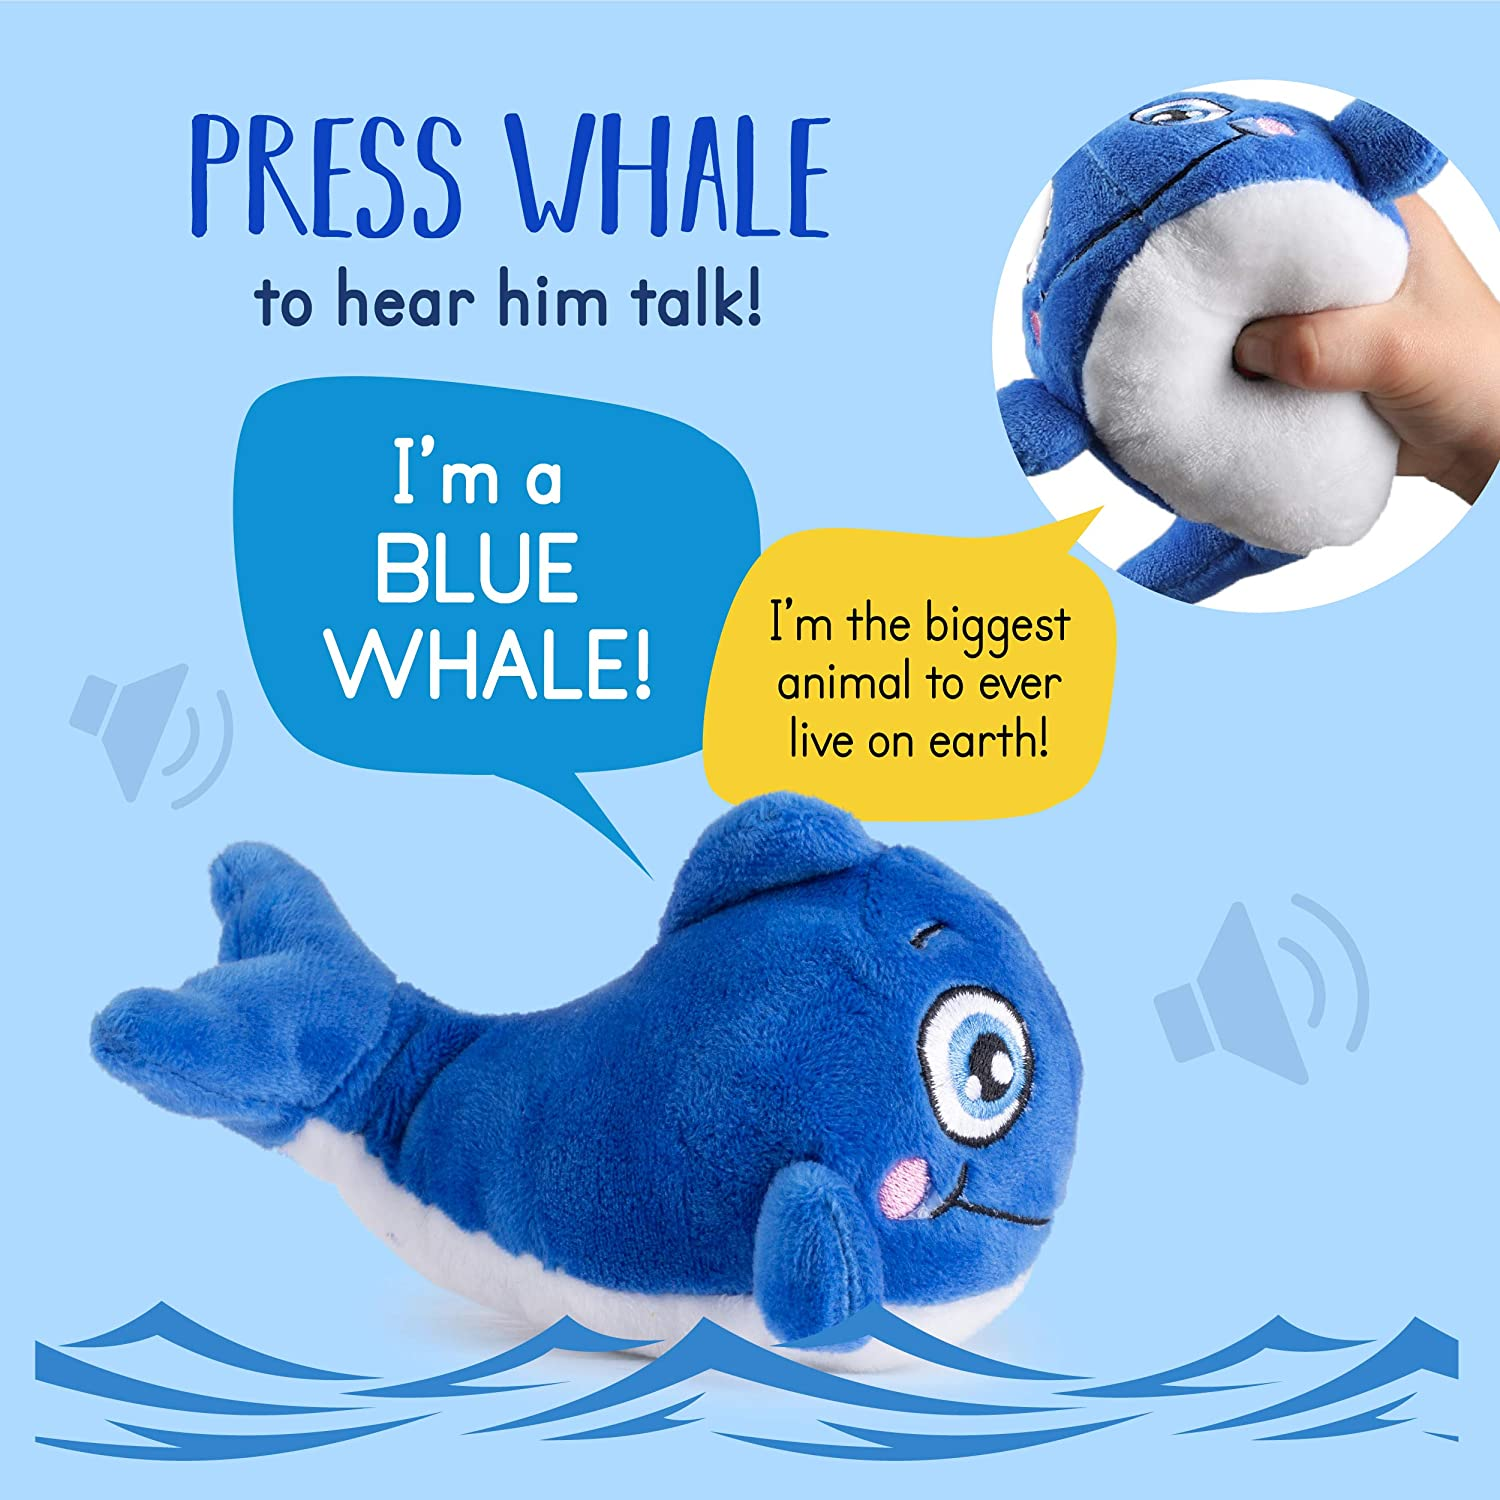 Sea Animals Talking Blue Whale Stuffed Animal Plush Talking Blue Whale Interactive and Educational 4 Blue Whale Plush Toy Gifts for Kids